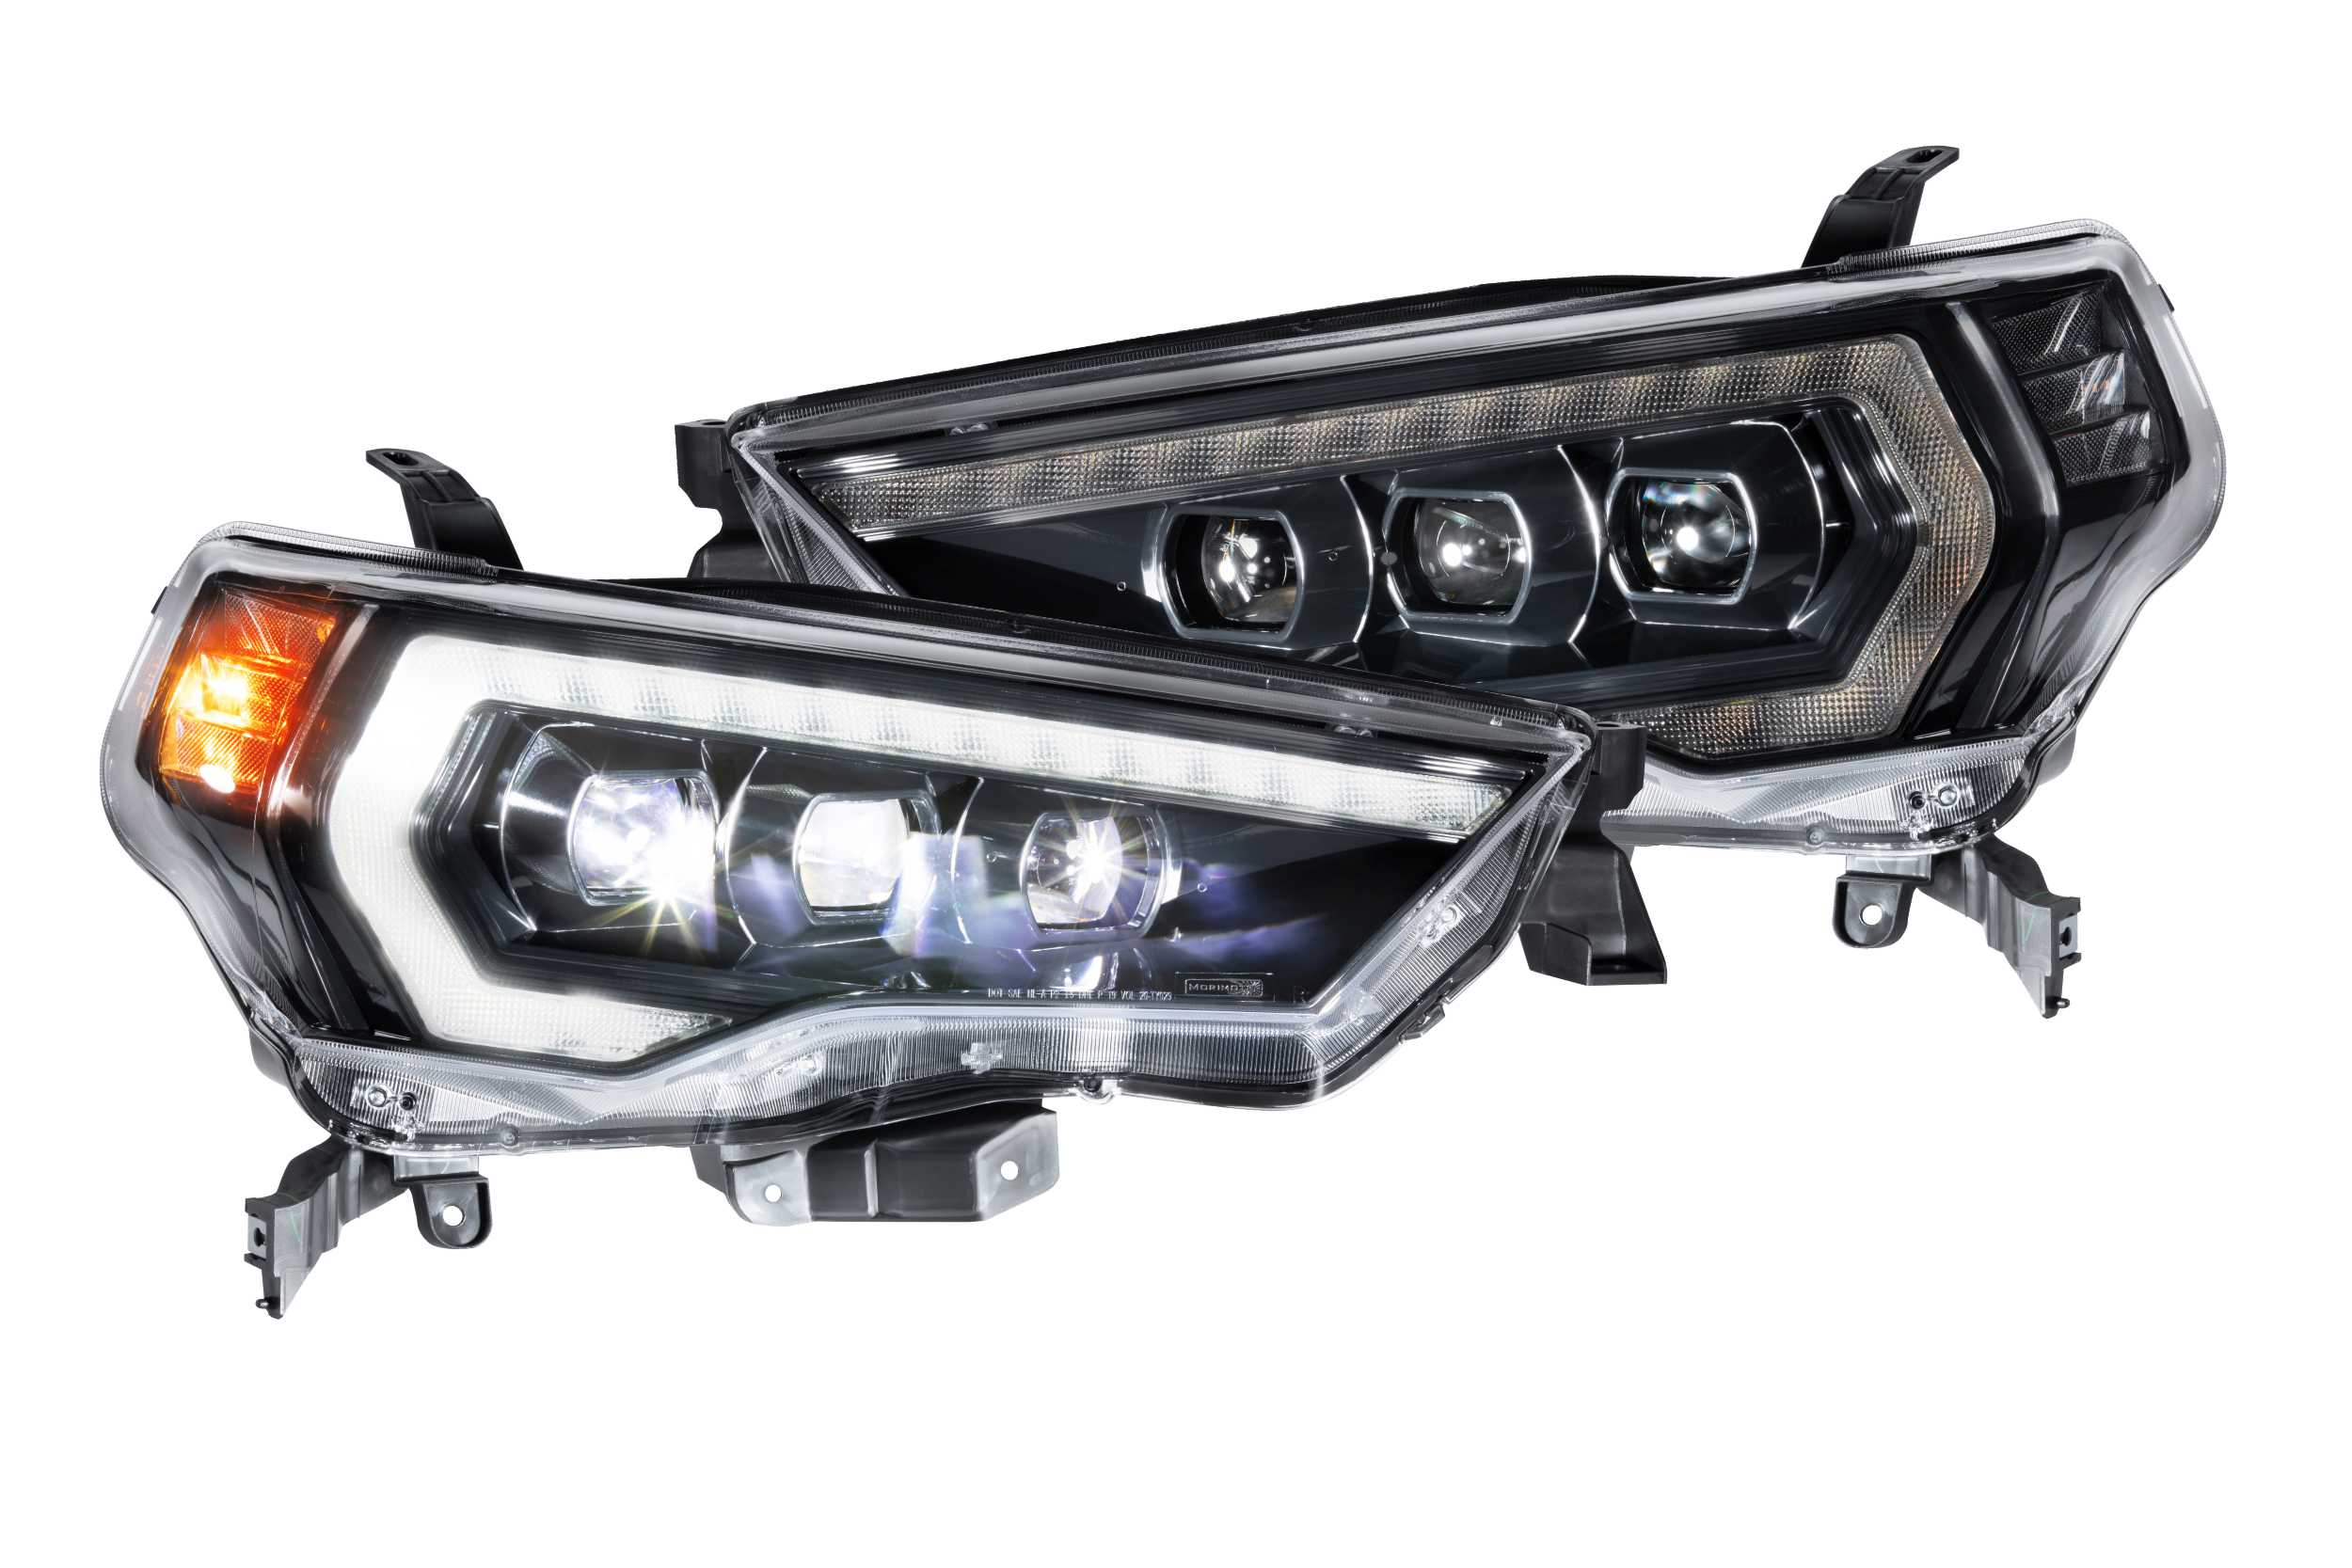 Morimoto XB LED Projector Headlights: Toyota 4Runner 2014-2020